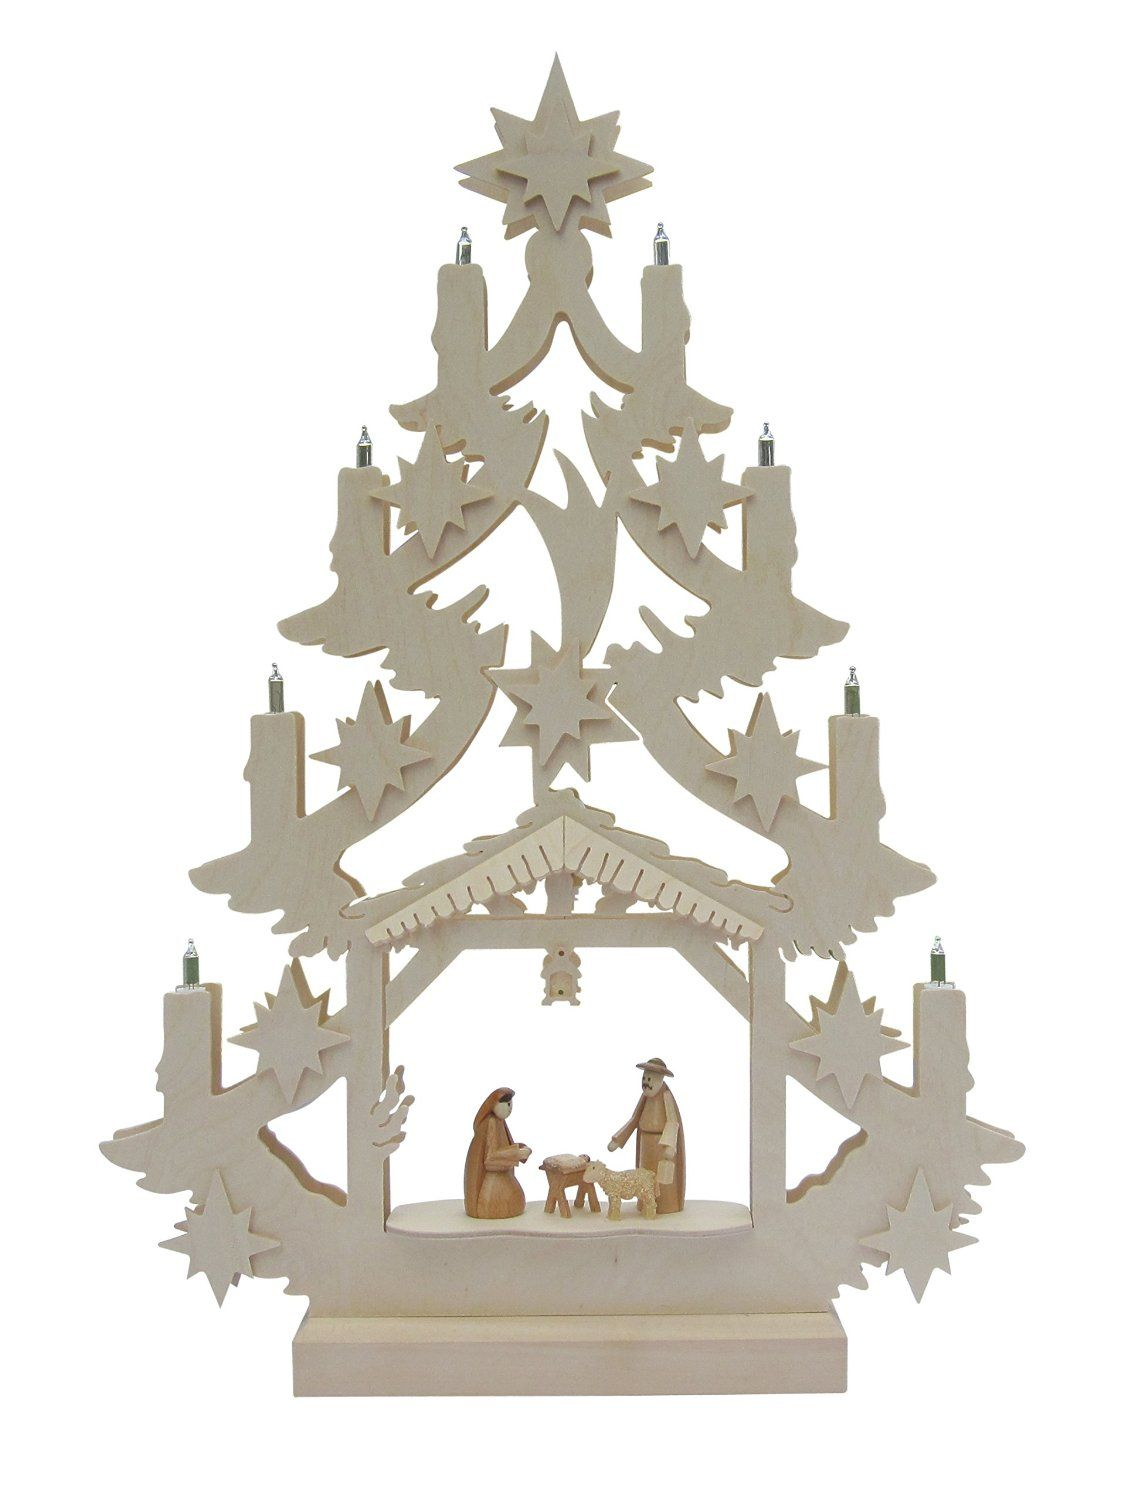 Nativity Scene Tree Archlimited Edition Hand Crafted